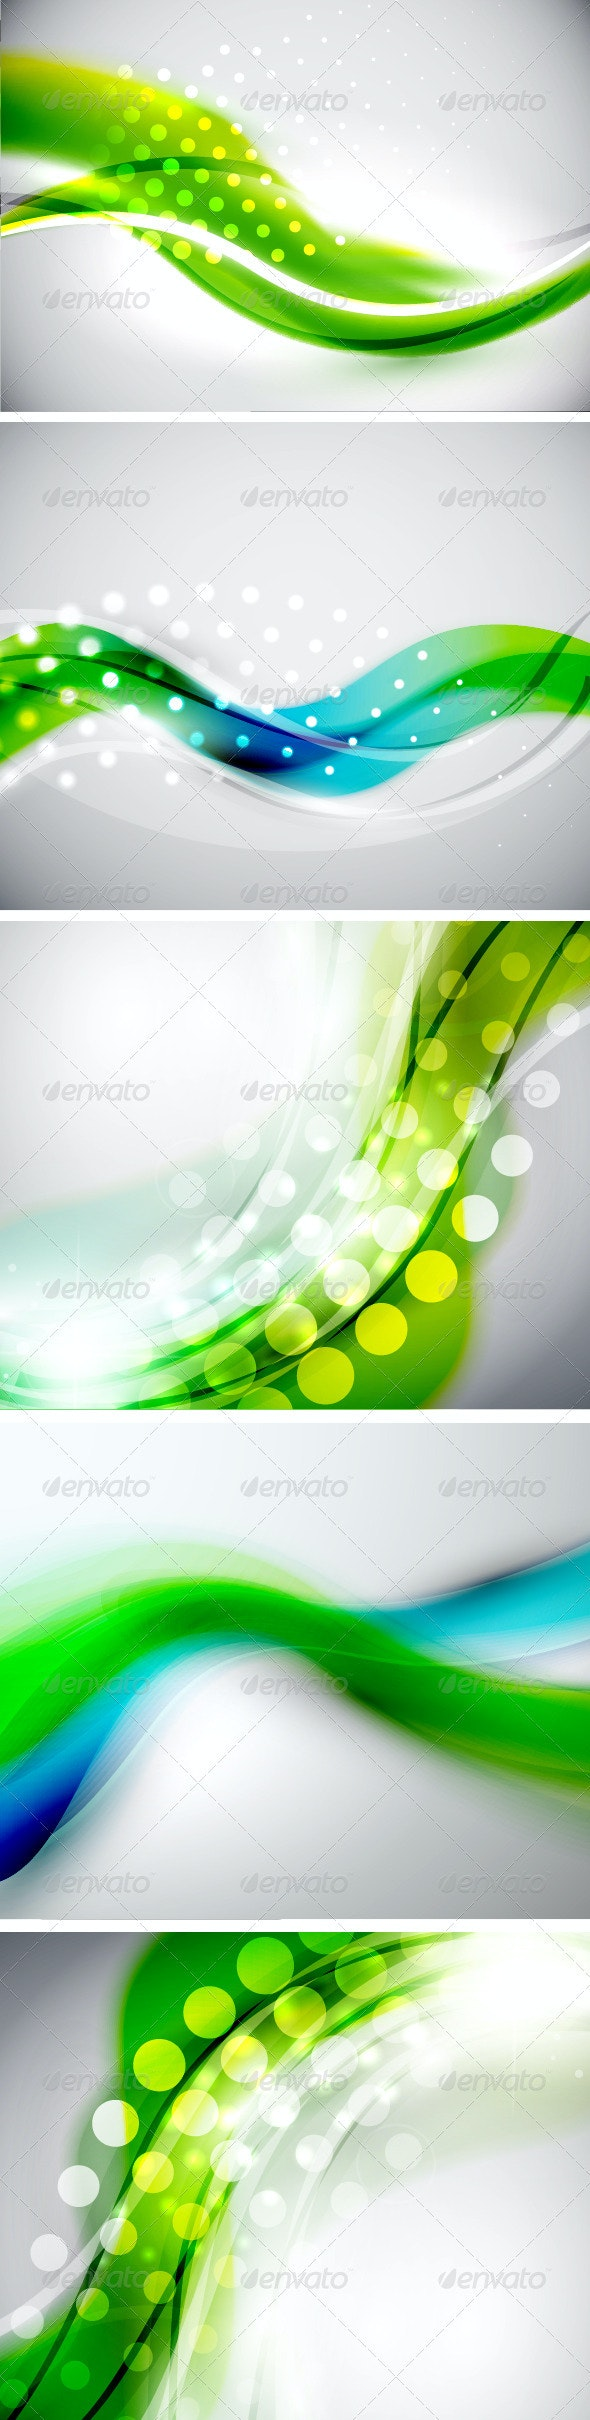 Blue Green Creative Backgrounds - Backgrounds Decorative